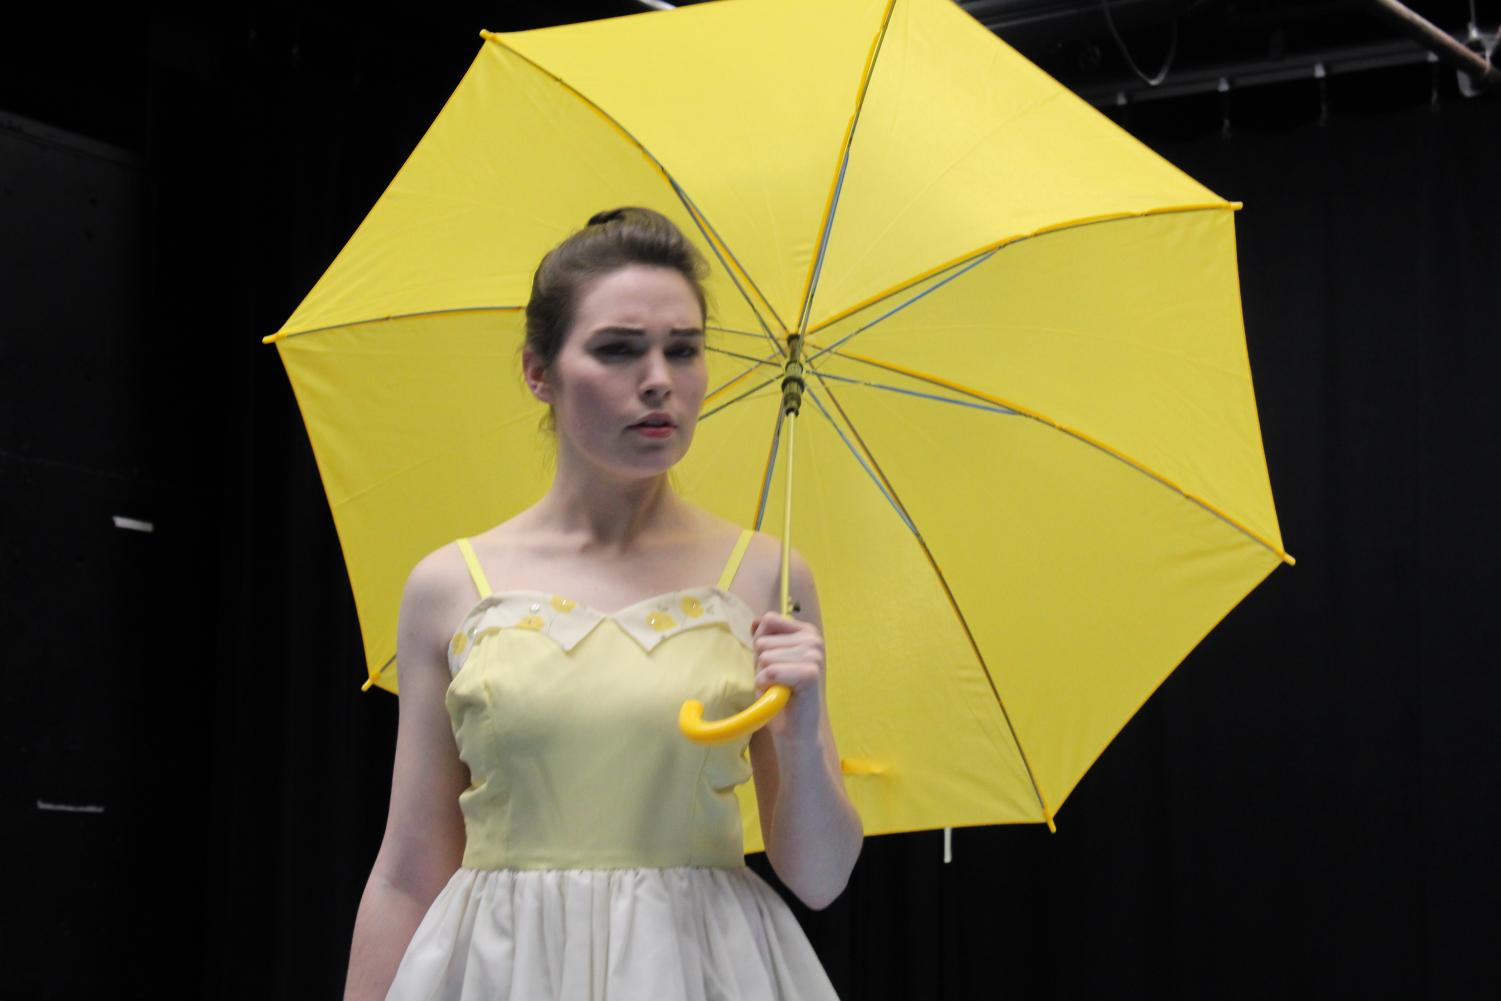 'Eurydice' puts new spin on old tale